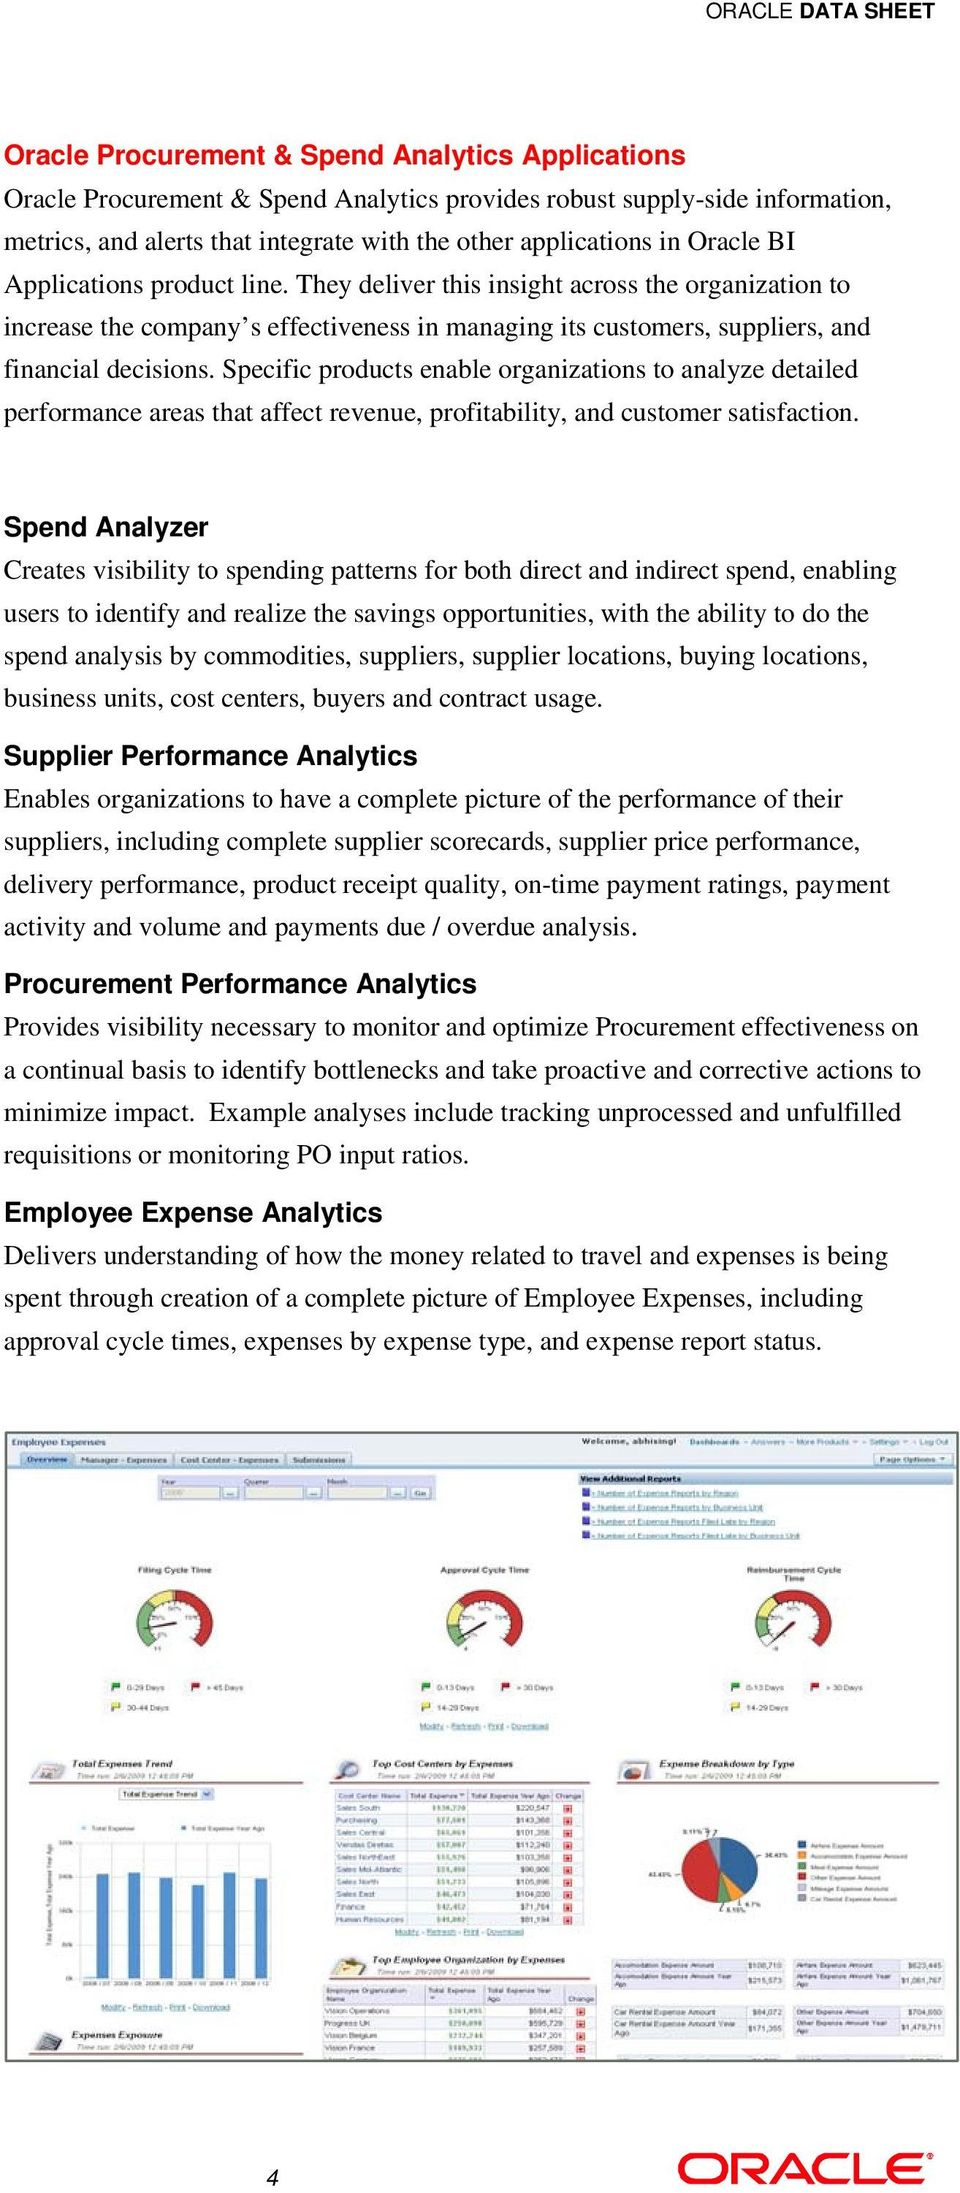 Specific products enable organizations to analyze detailed performance areas that affect revenue, profitability, and customer satisfaction.